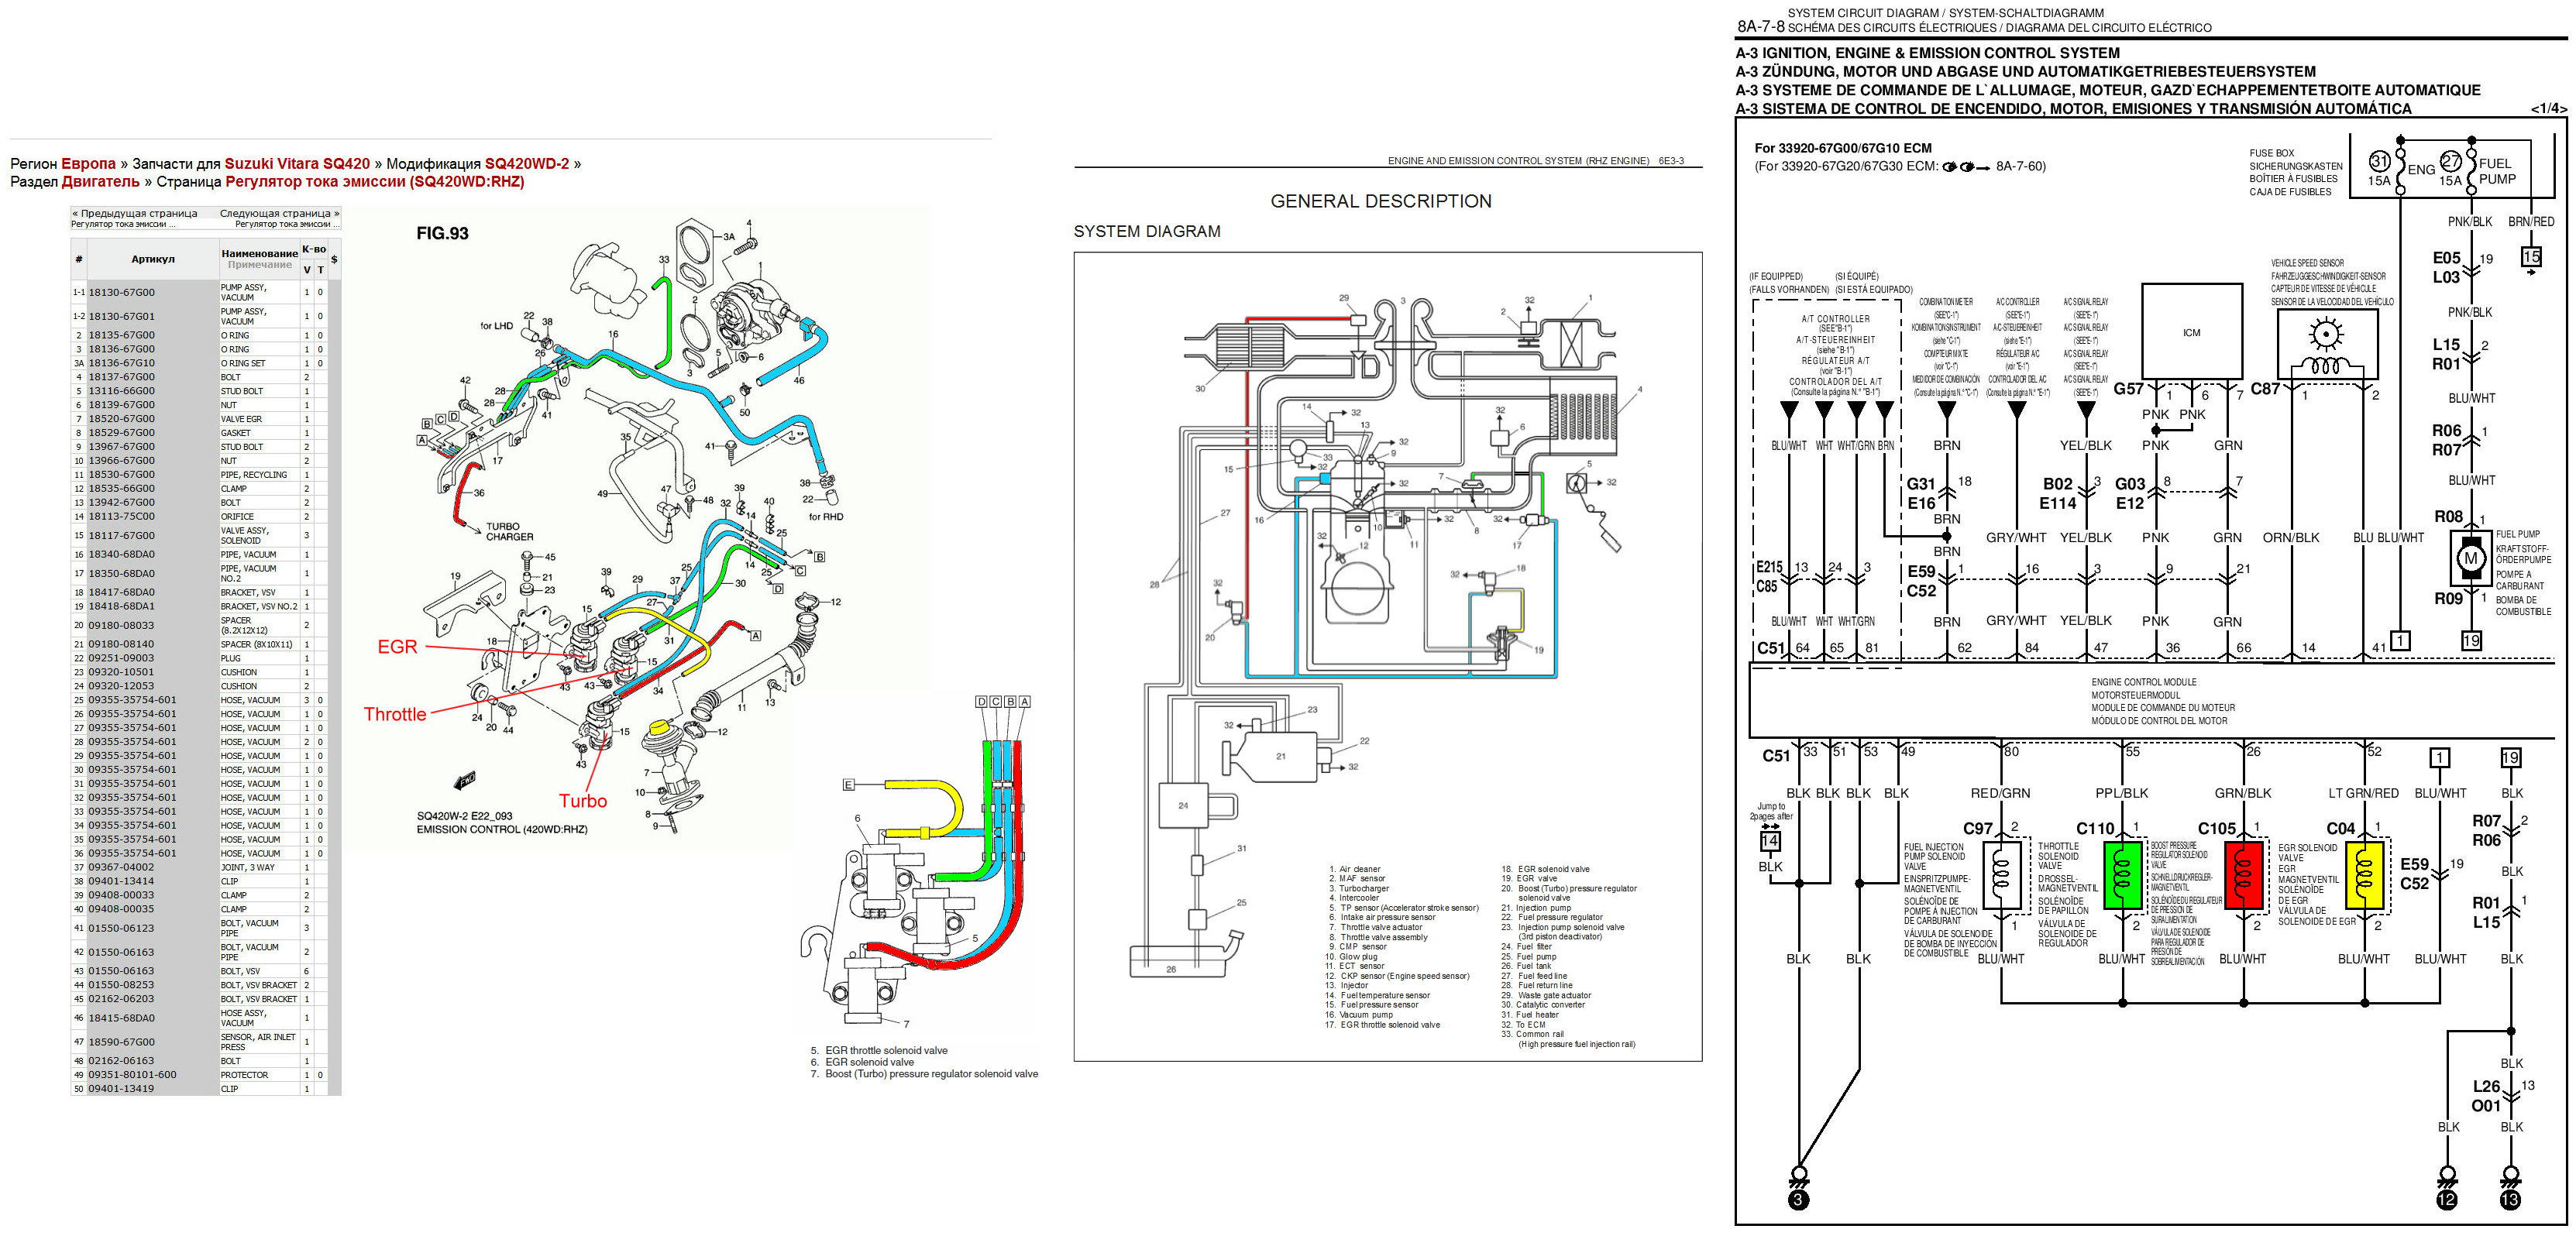 Daihatsu Ej Ve Ecu Wiring Diagram. myvi ecu wiring diagram